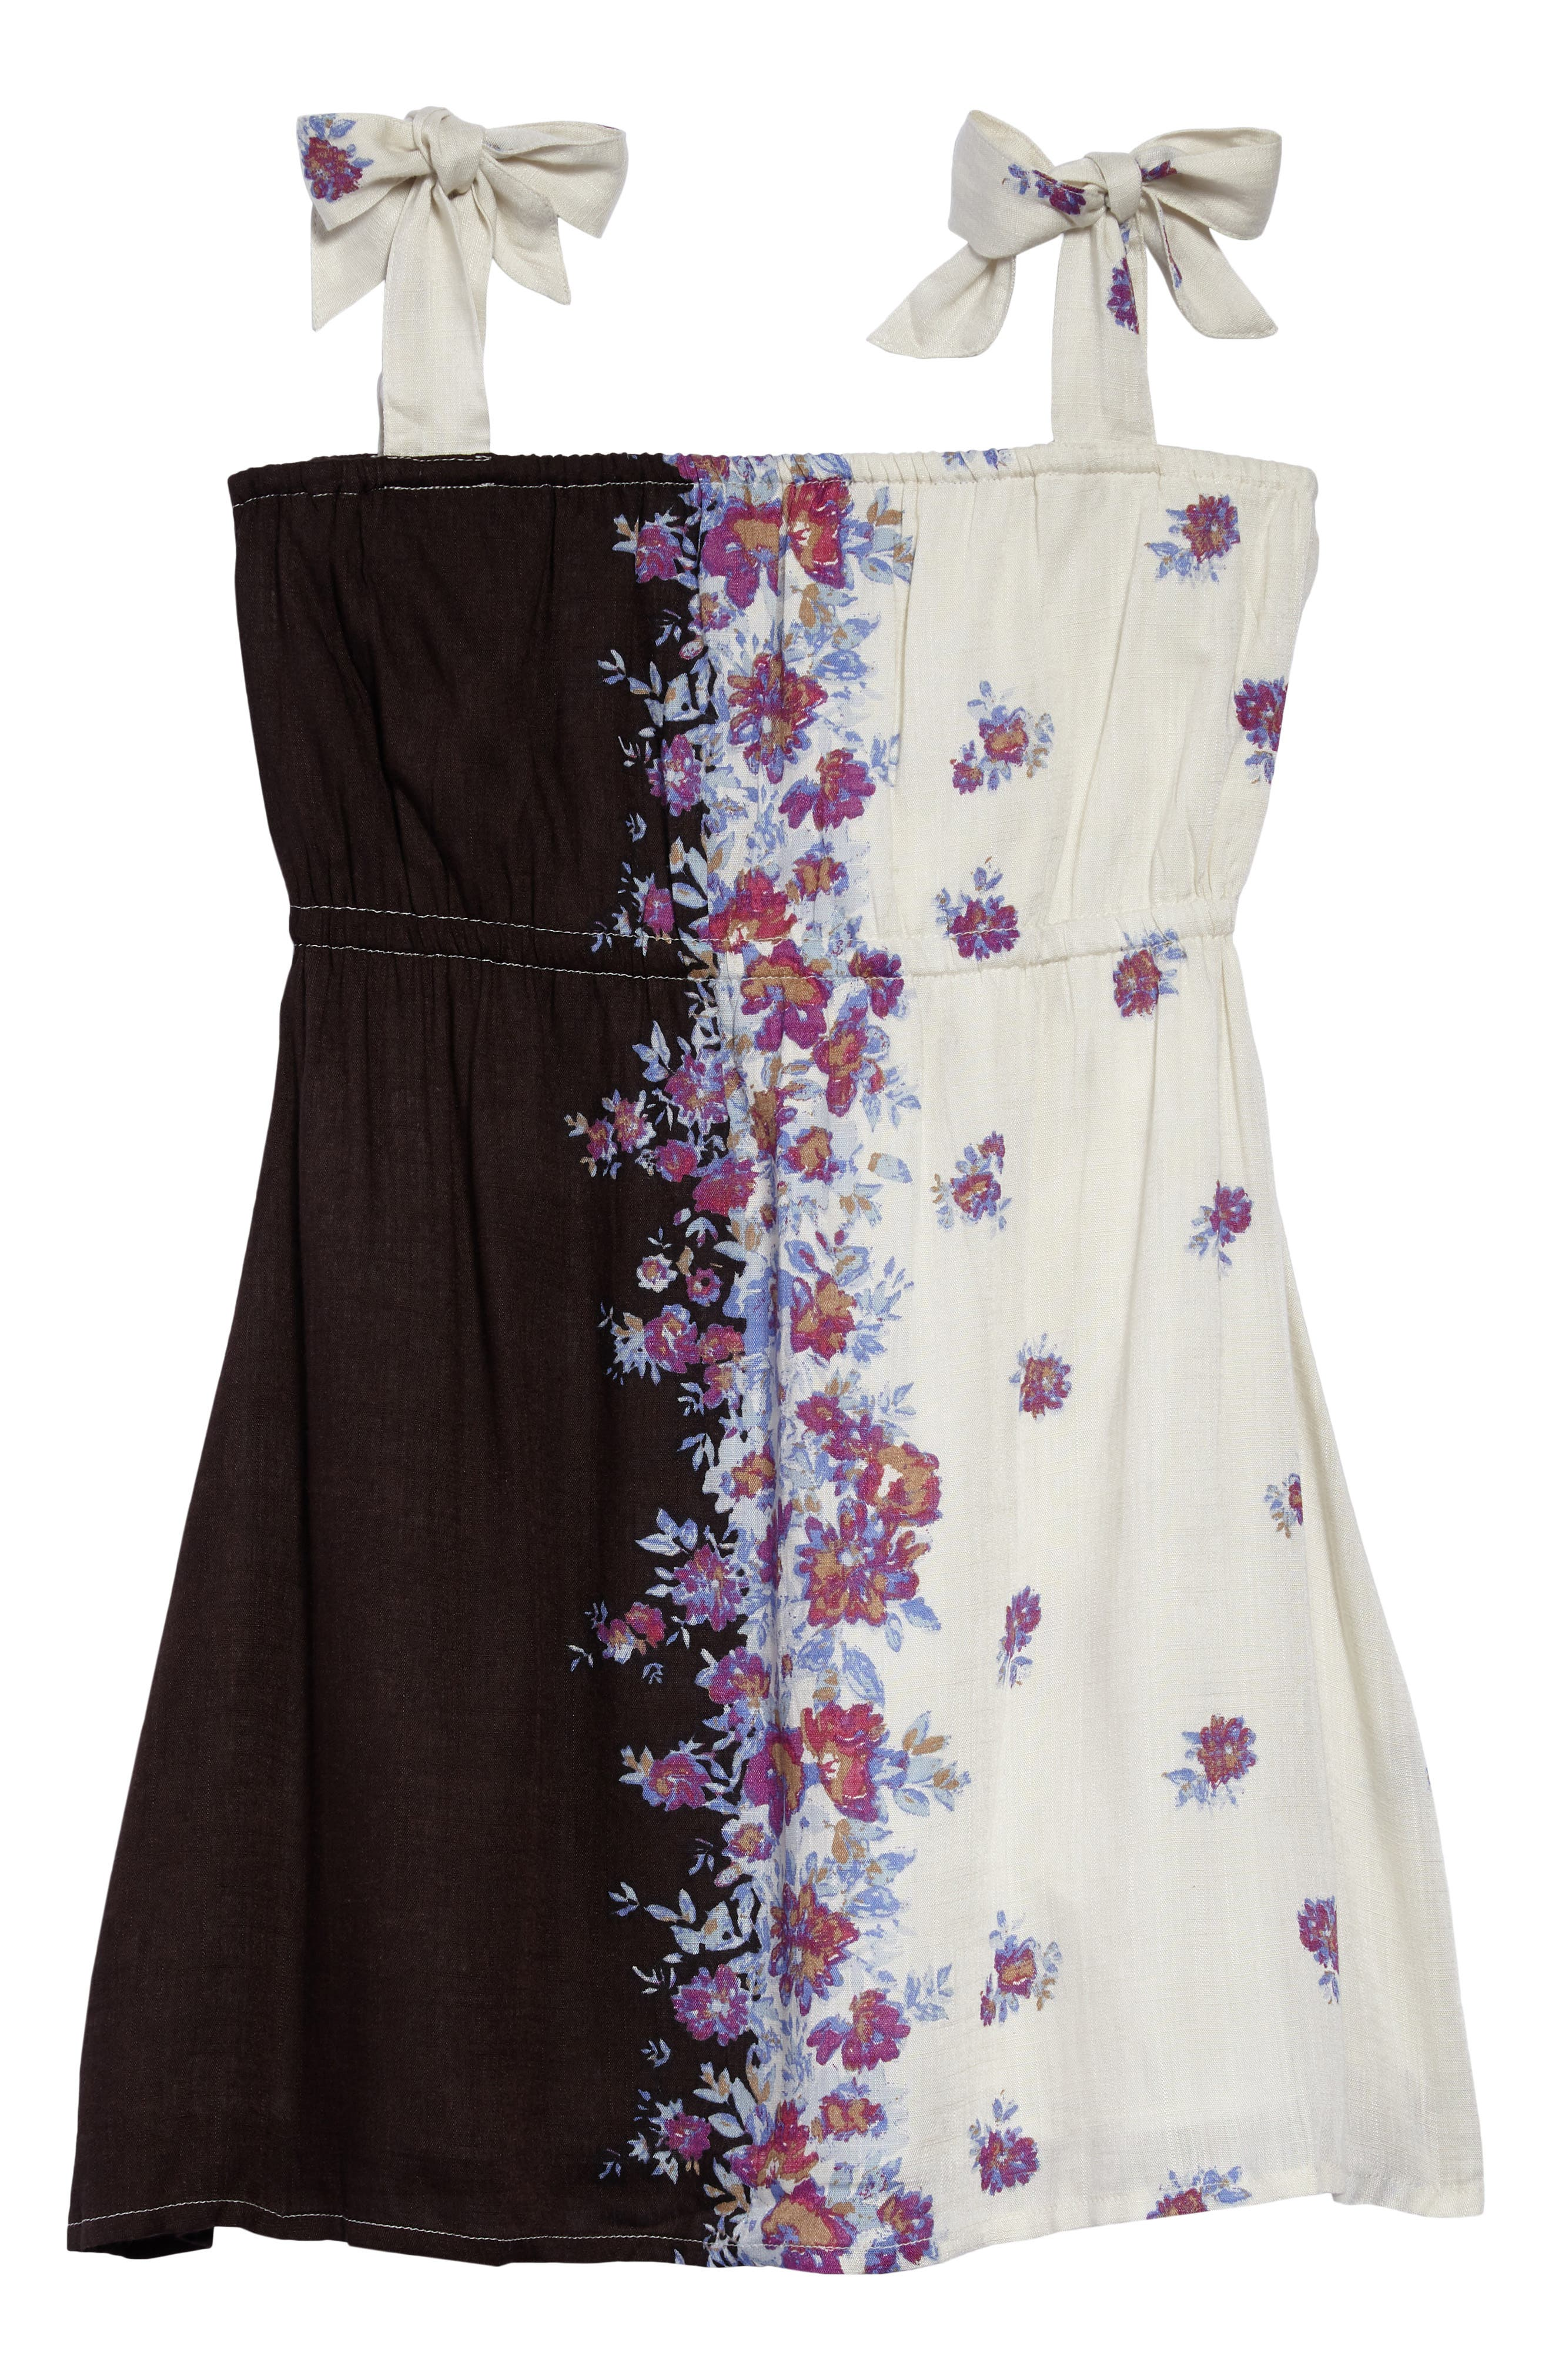 Rosy Floral Dress,                             Main thumbnail 1, color,                             MULTI COLORED